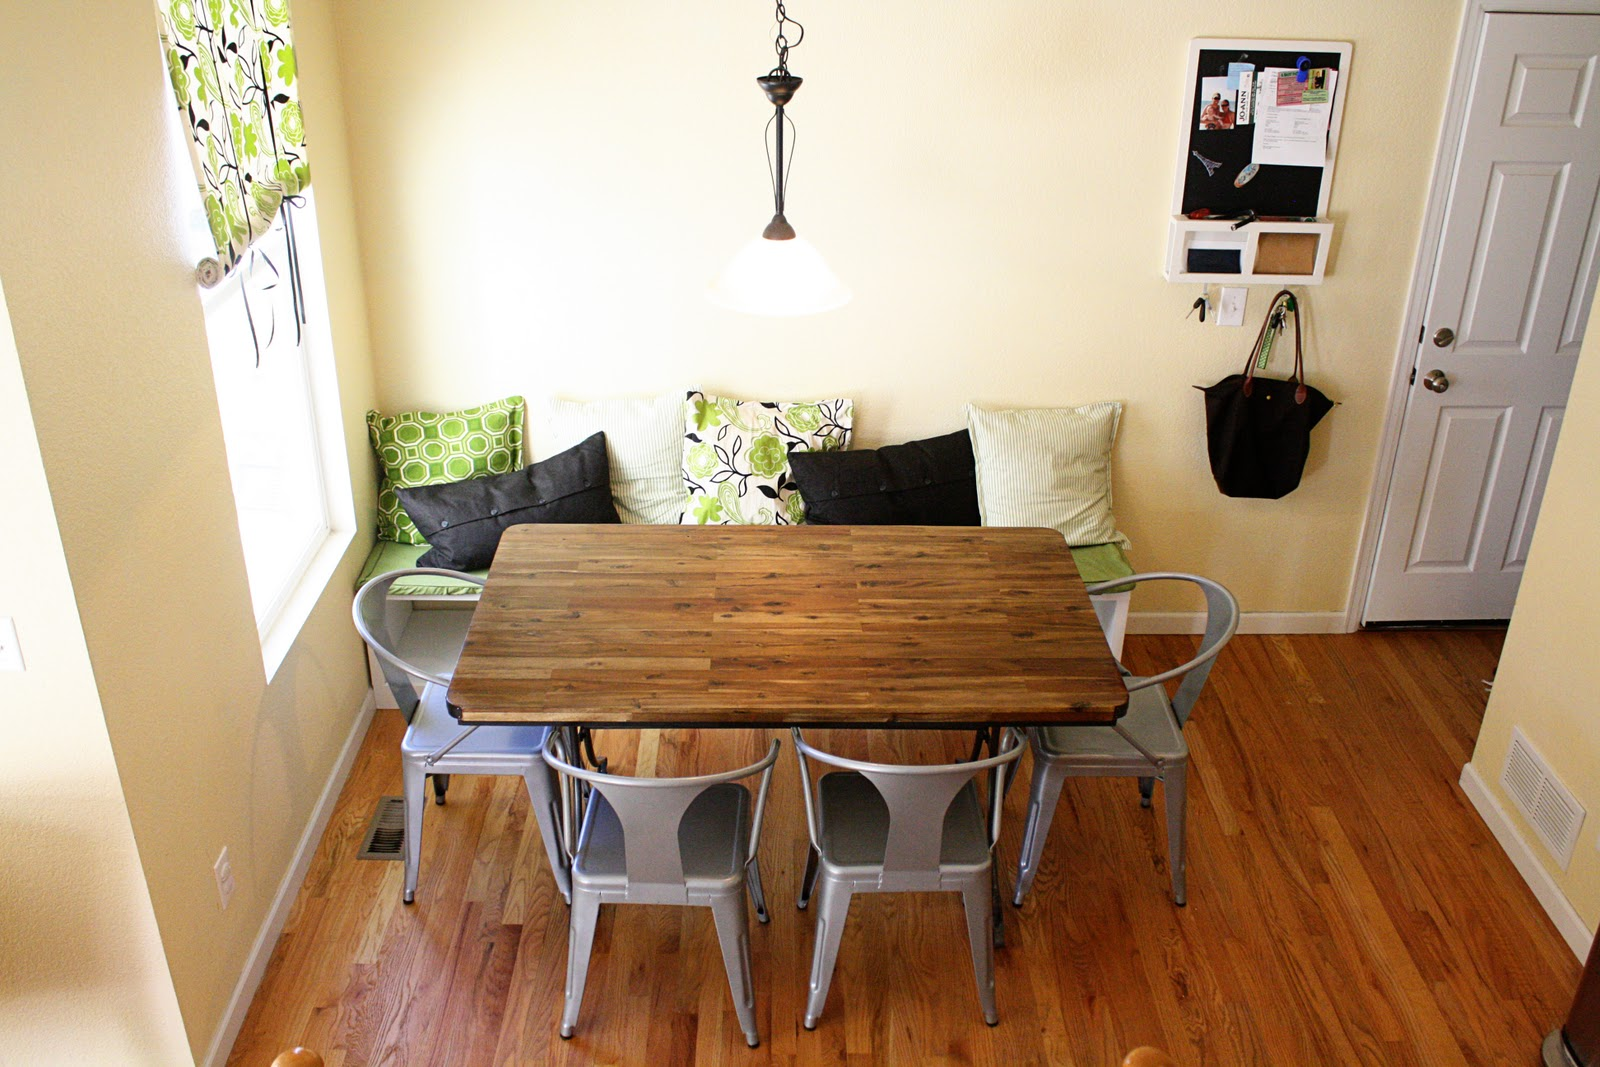 Breakfast nook with banquette seating Corner bench table